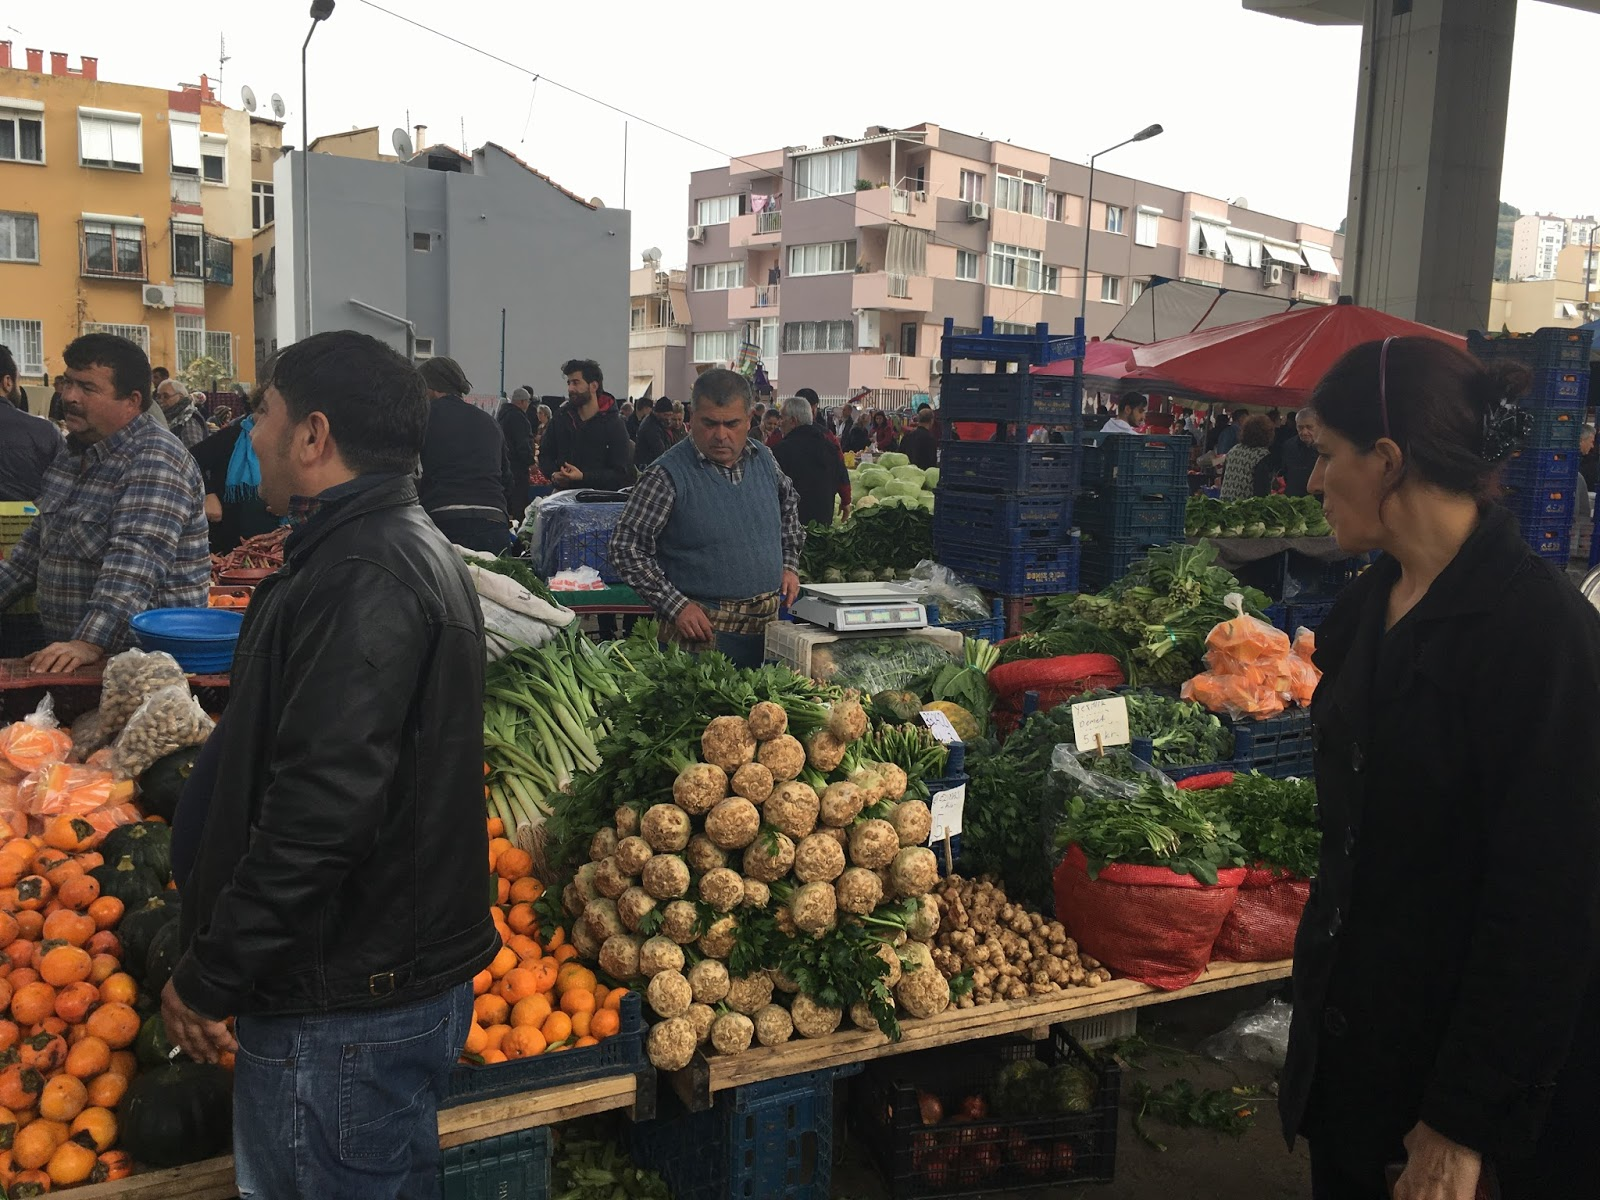 LeeZe visits Izmir Sunday farmer's market. Here the celery root is highly prized and not the stalks.